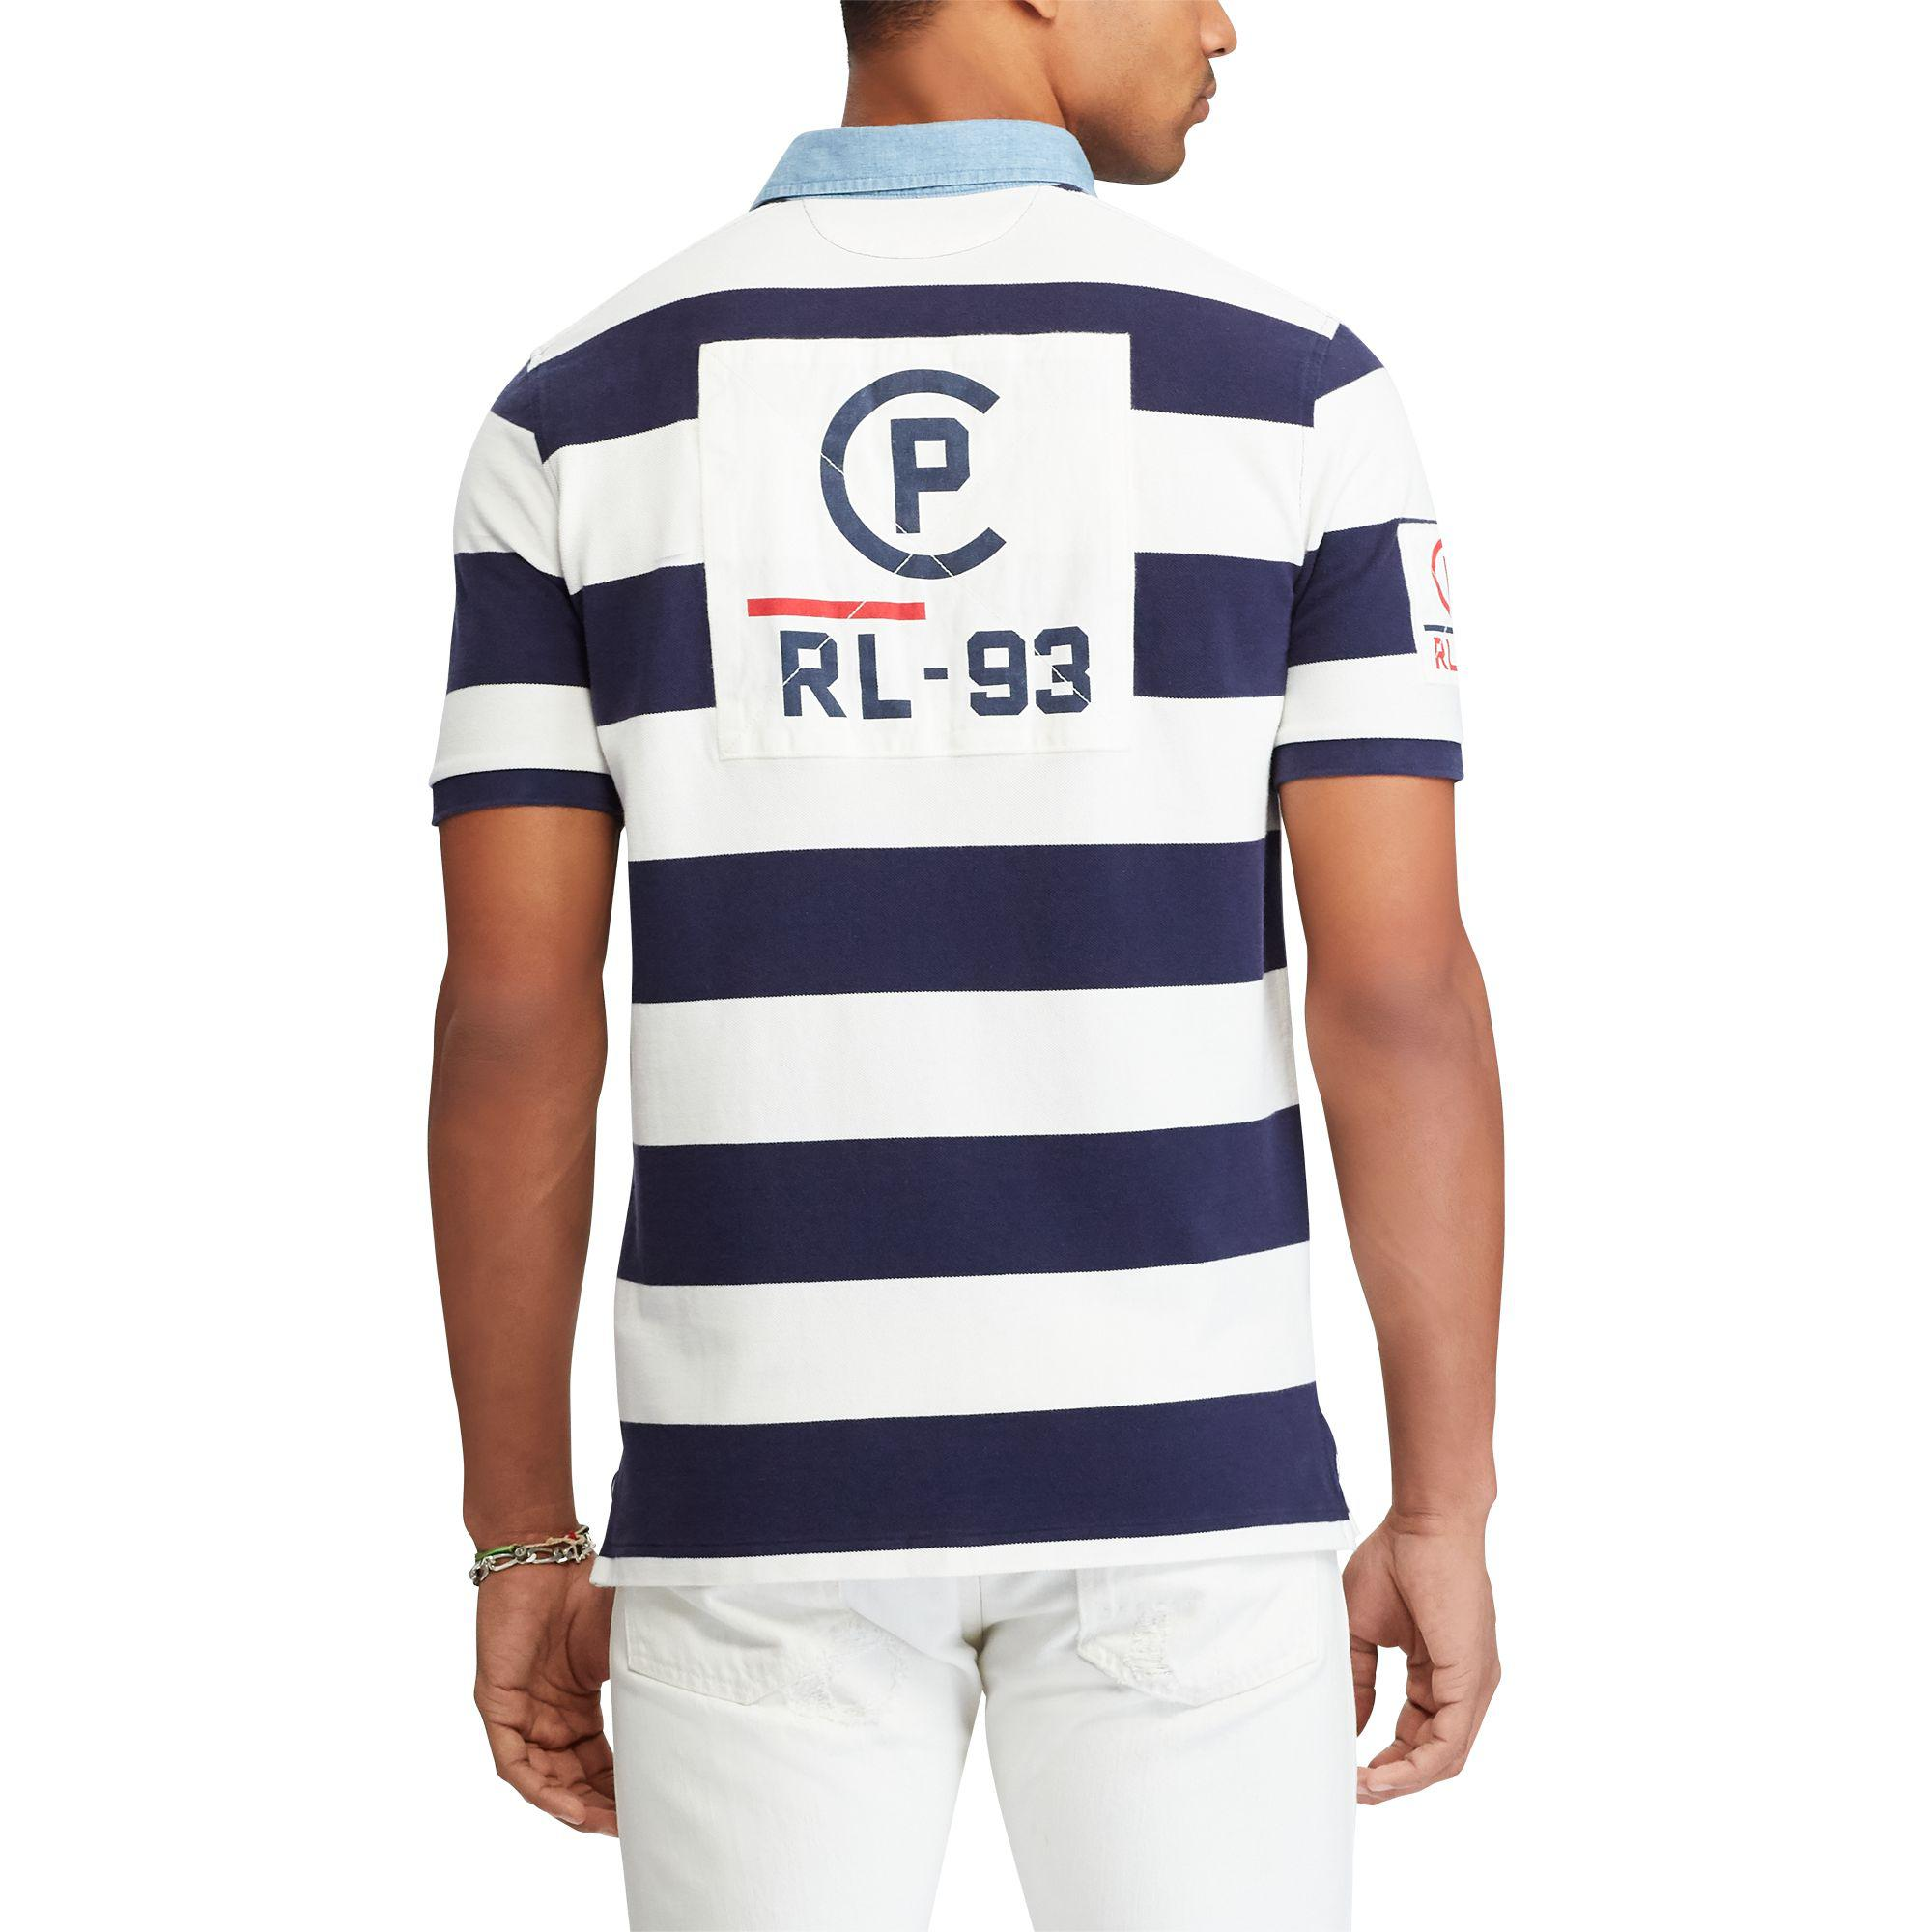 4f056ee2 Polo Ralph Lauren Cp 93 Classic Fit T Shirt